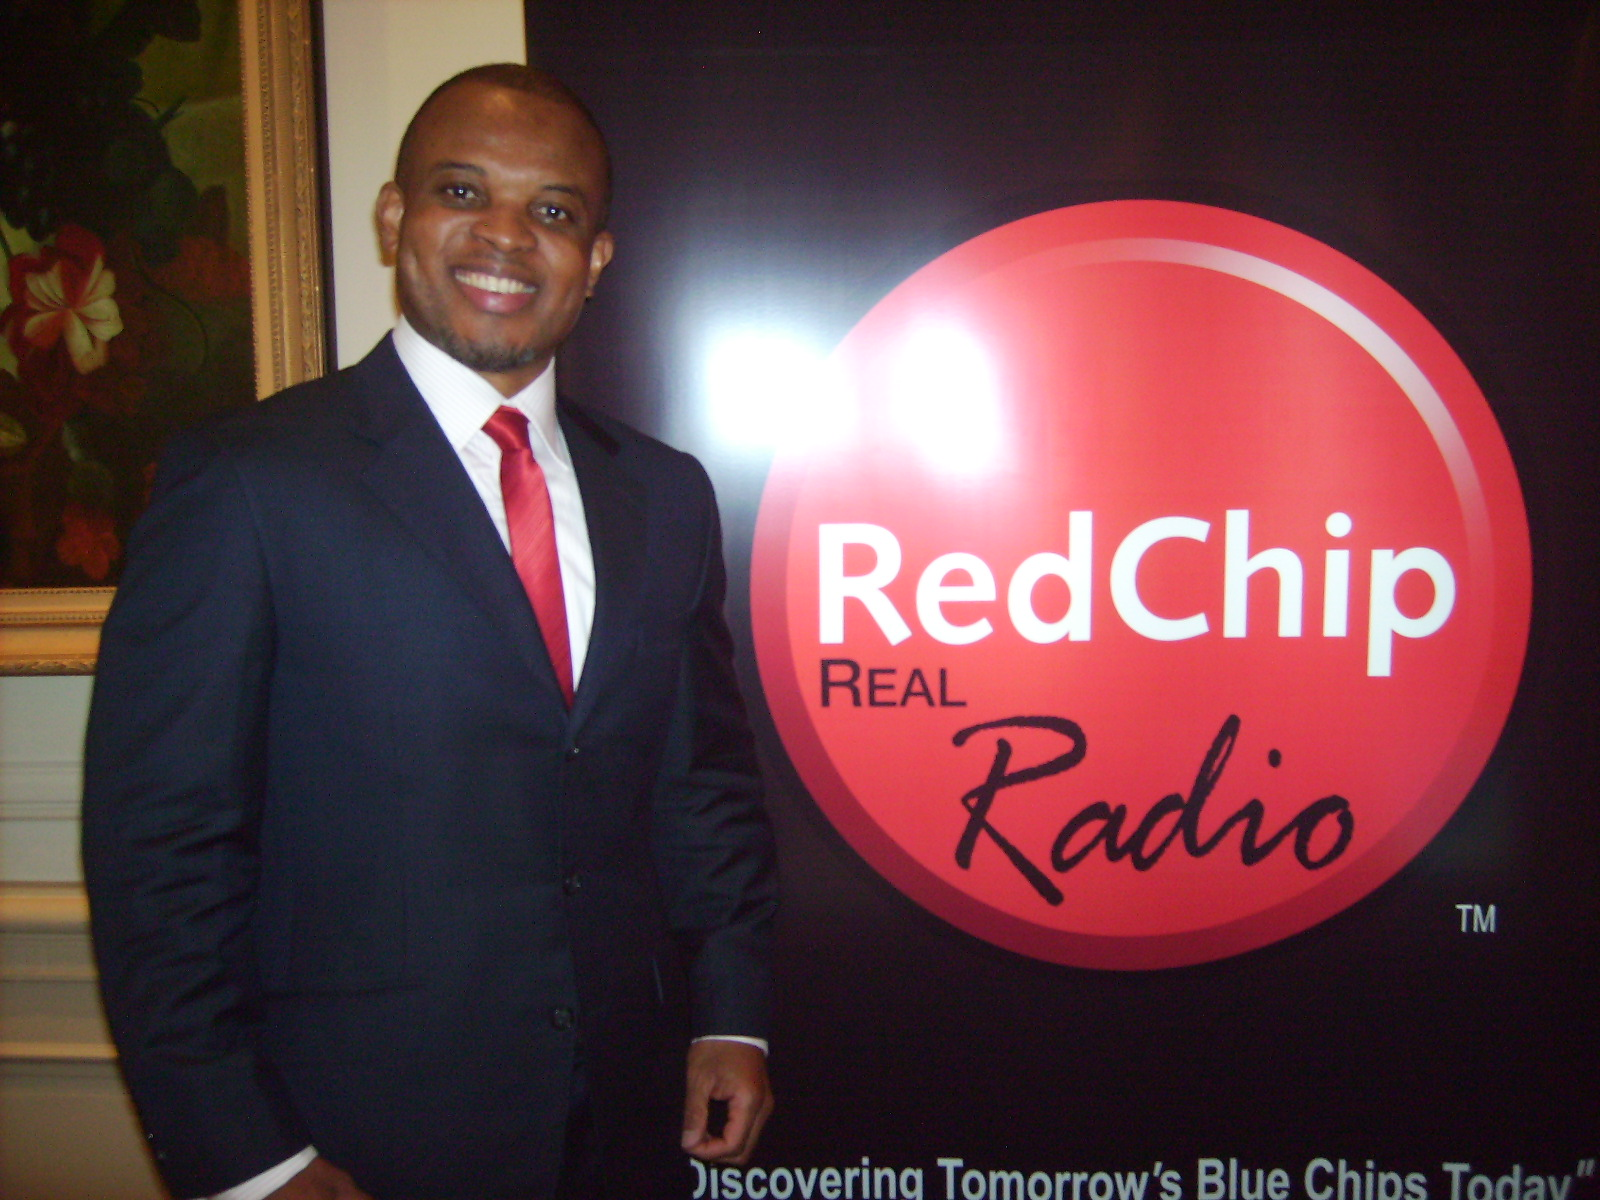 ERHC COO Peter Ntephe at the RedChip Small-Cap Investors Conference